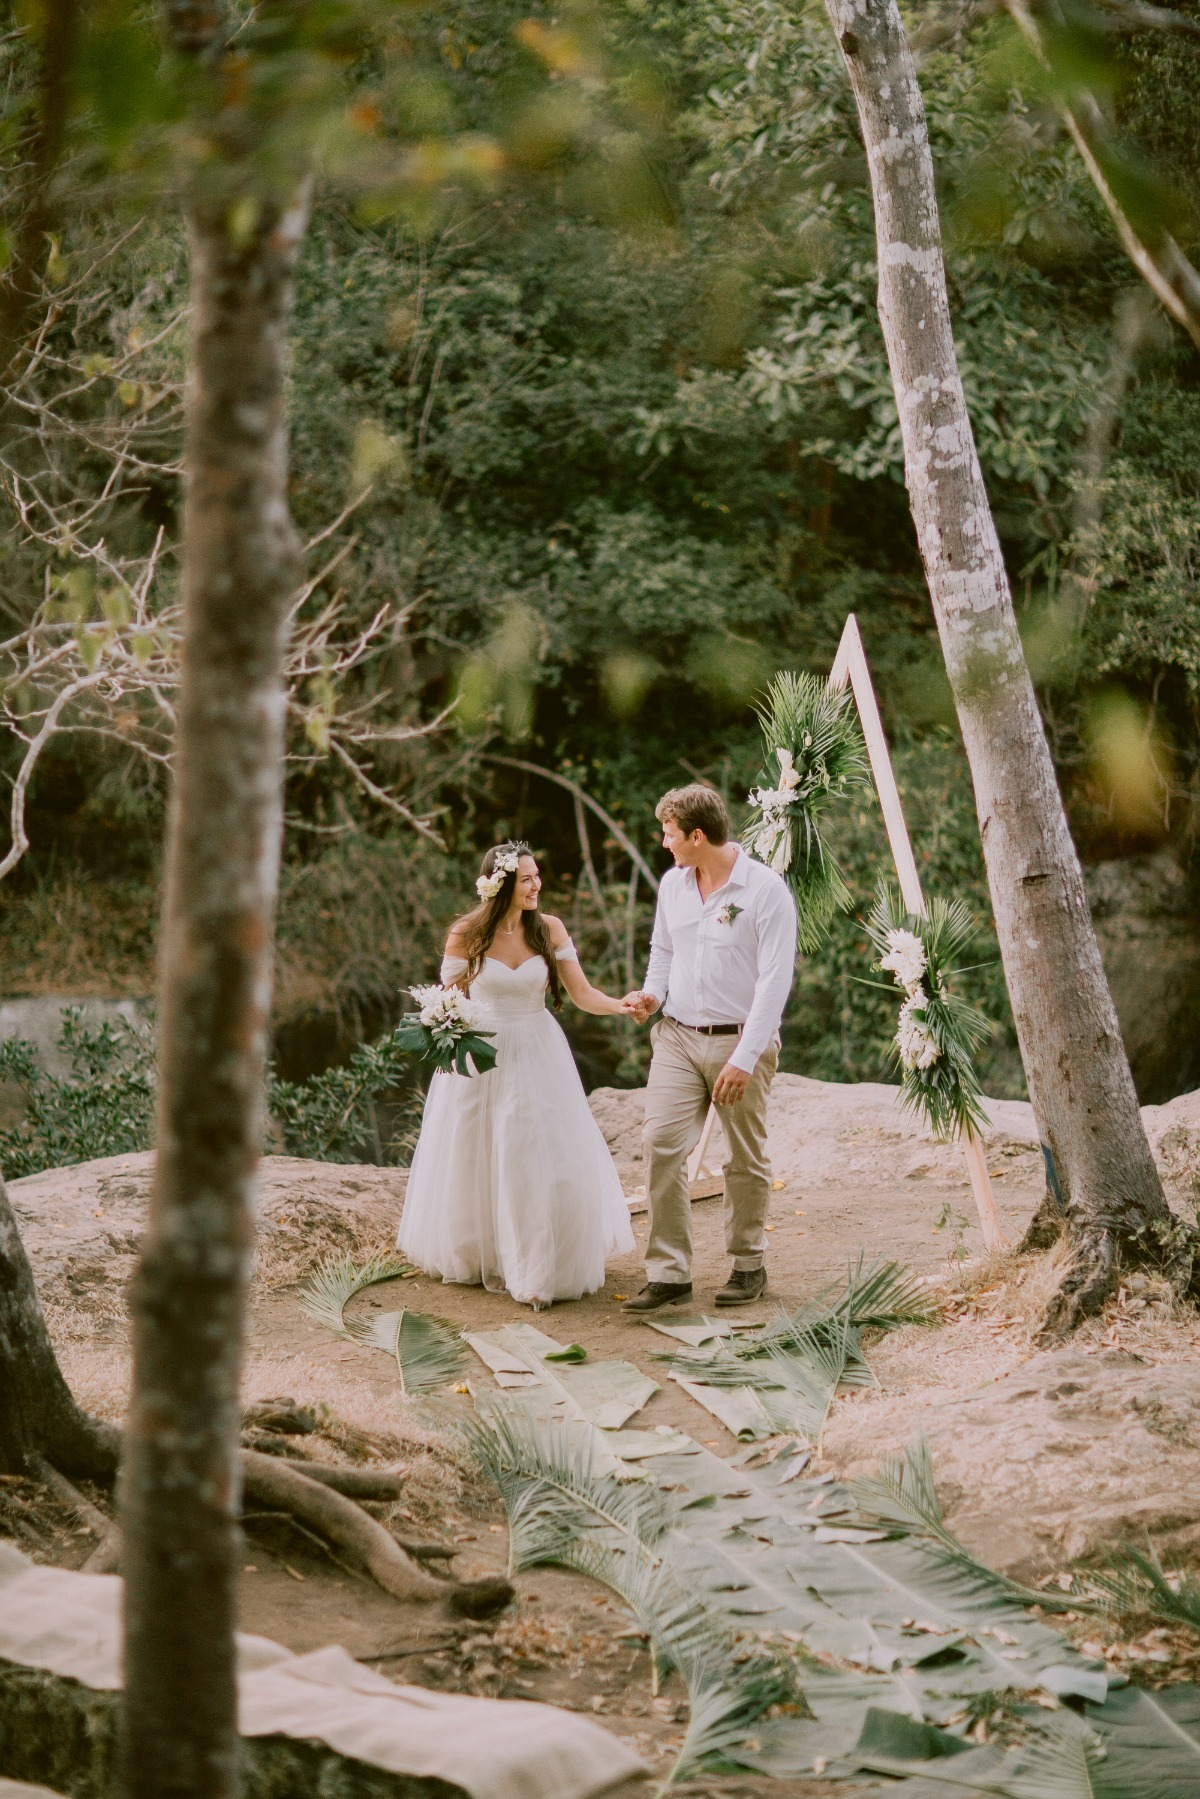 Bride and Groom at tropical Costa Rica wedding